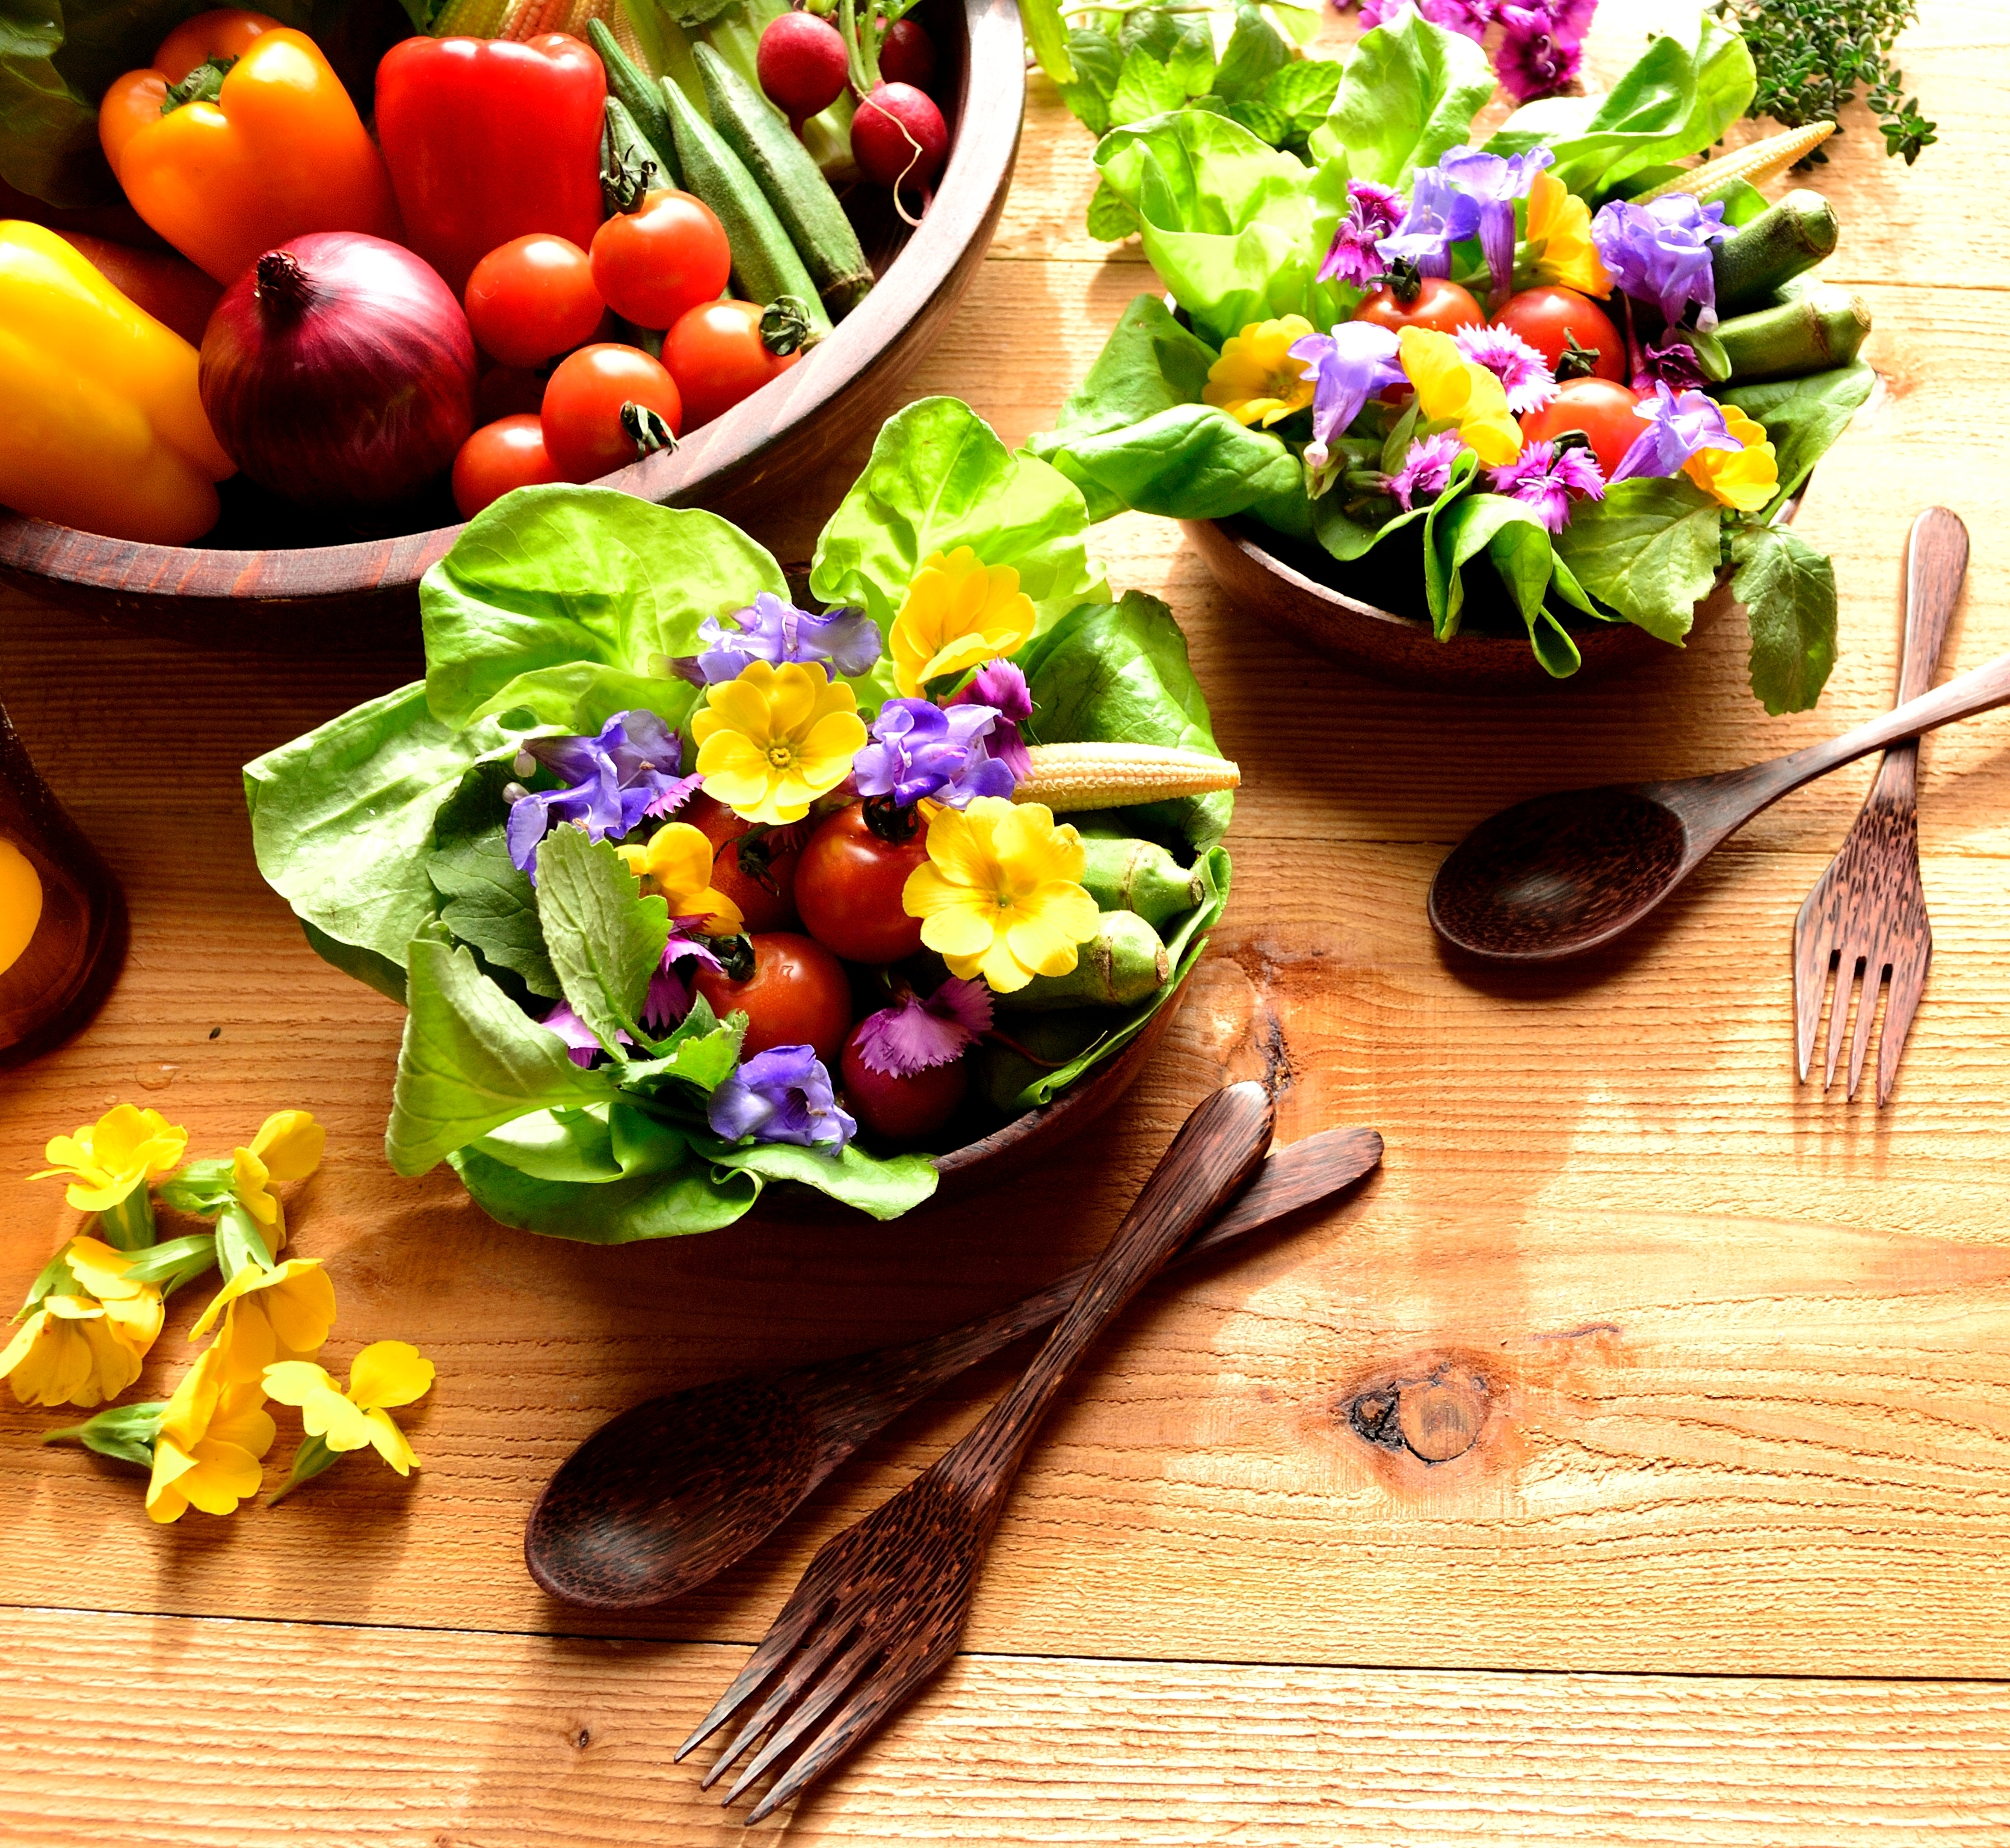 Edible flowers add beauty and taste to meals extension daily flowers are typically given as gifts or used for decoration but when it comes to preparing a meal flowers are not high on the list of ingredients izmirmasajfo